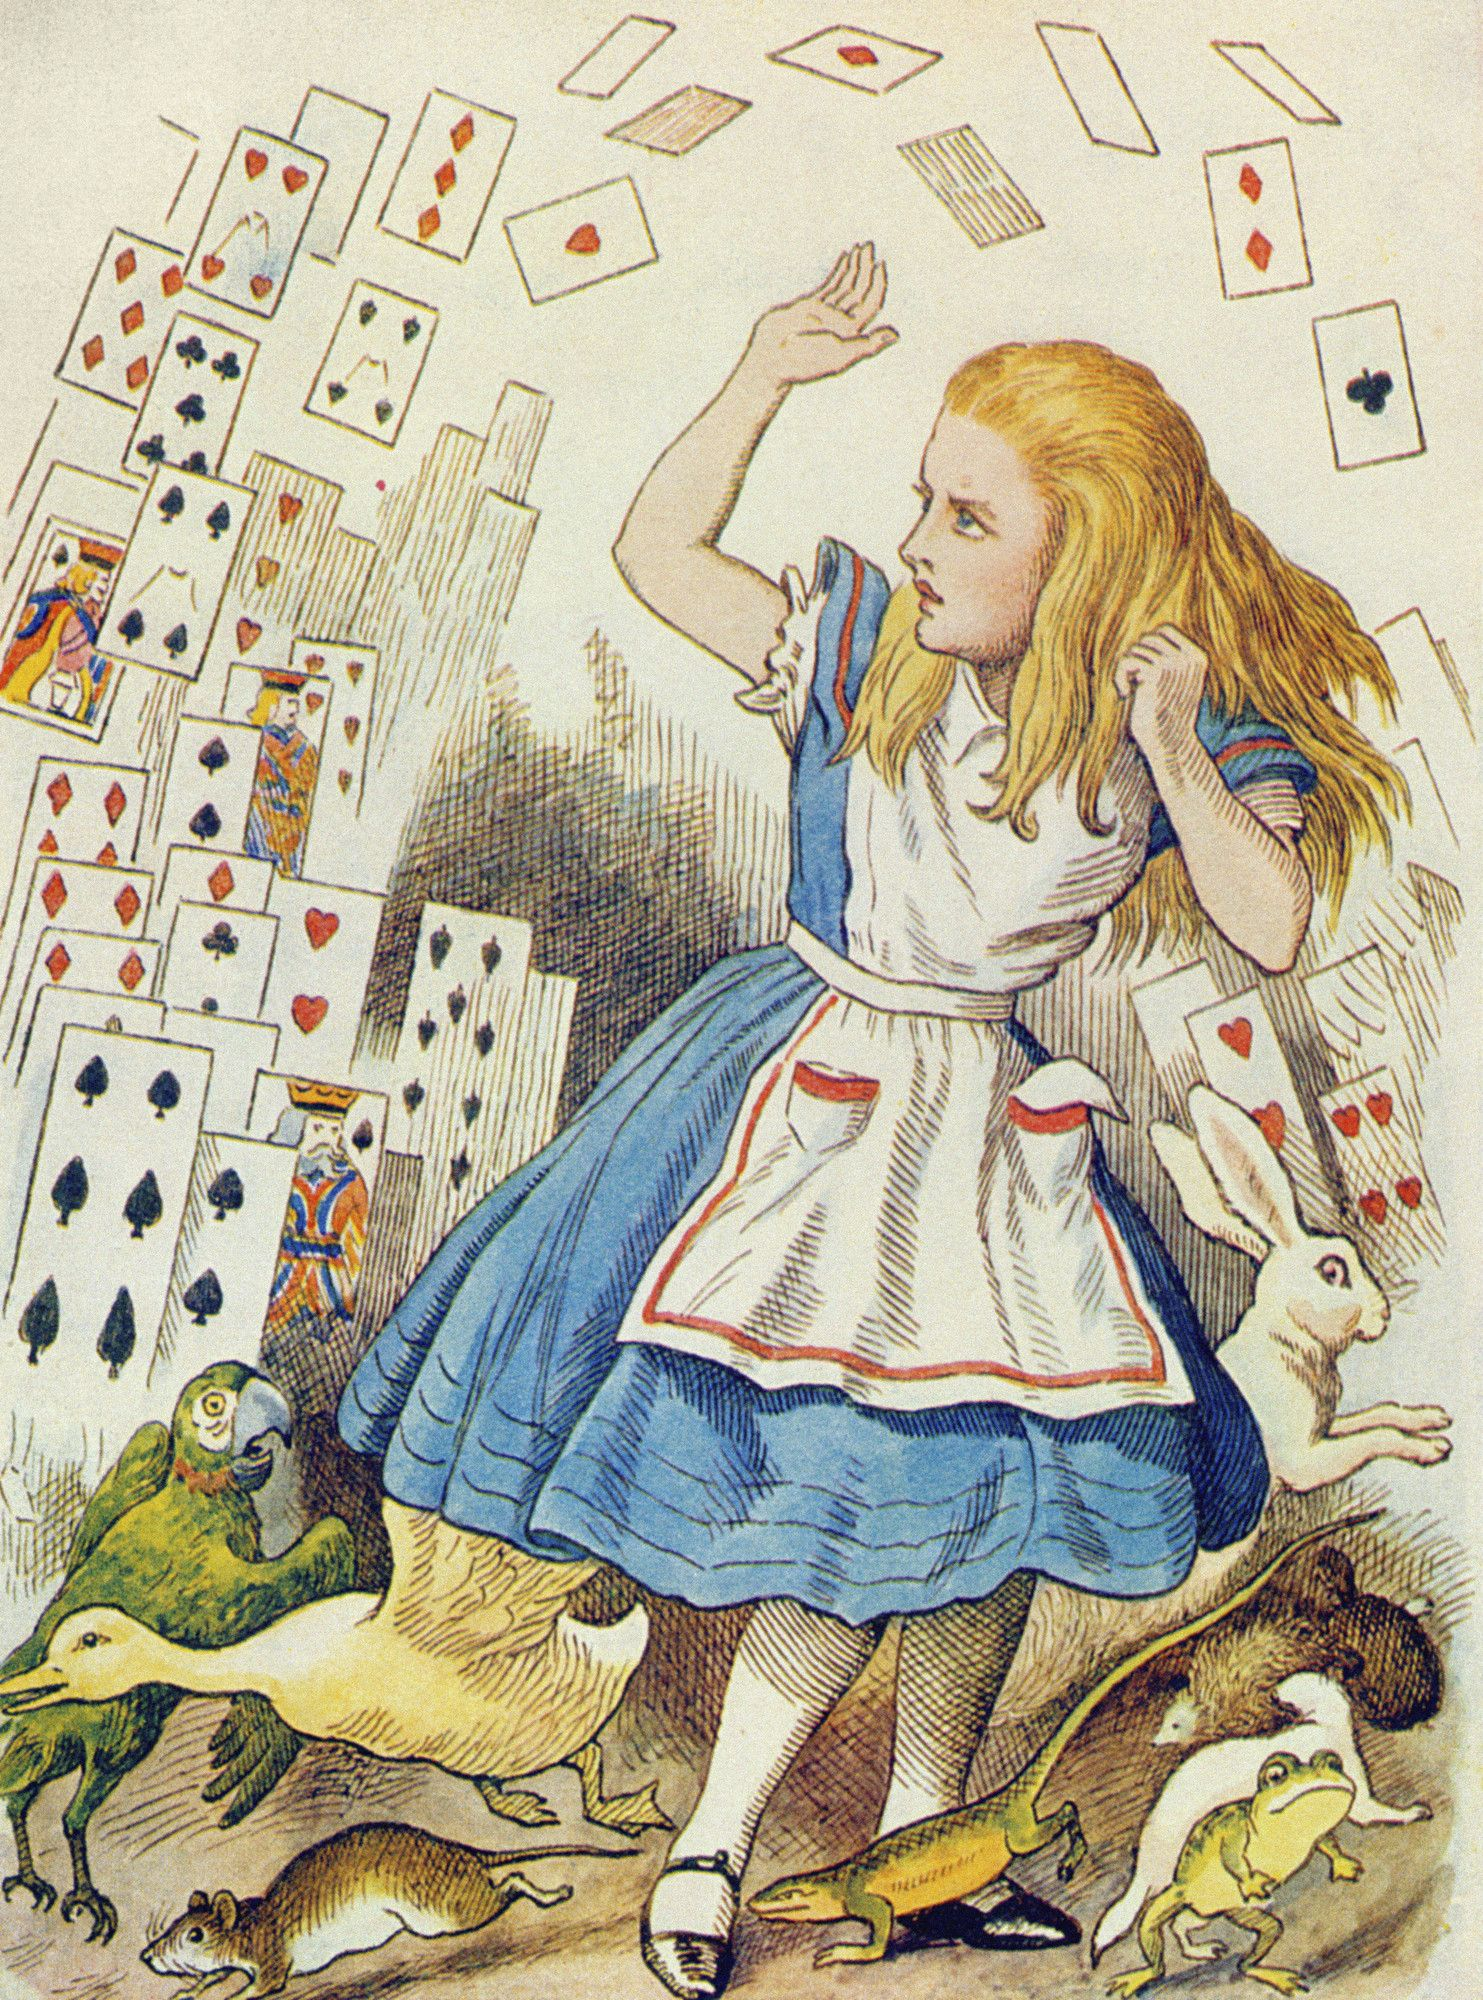 John Tenniel   The Shower of Cards, illustration from 'Alice in Wonderland' by Lewis Carroll   Buy Prints Online